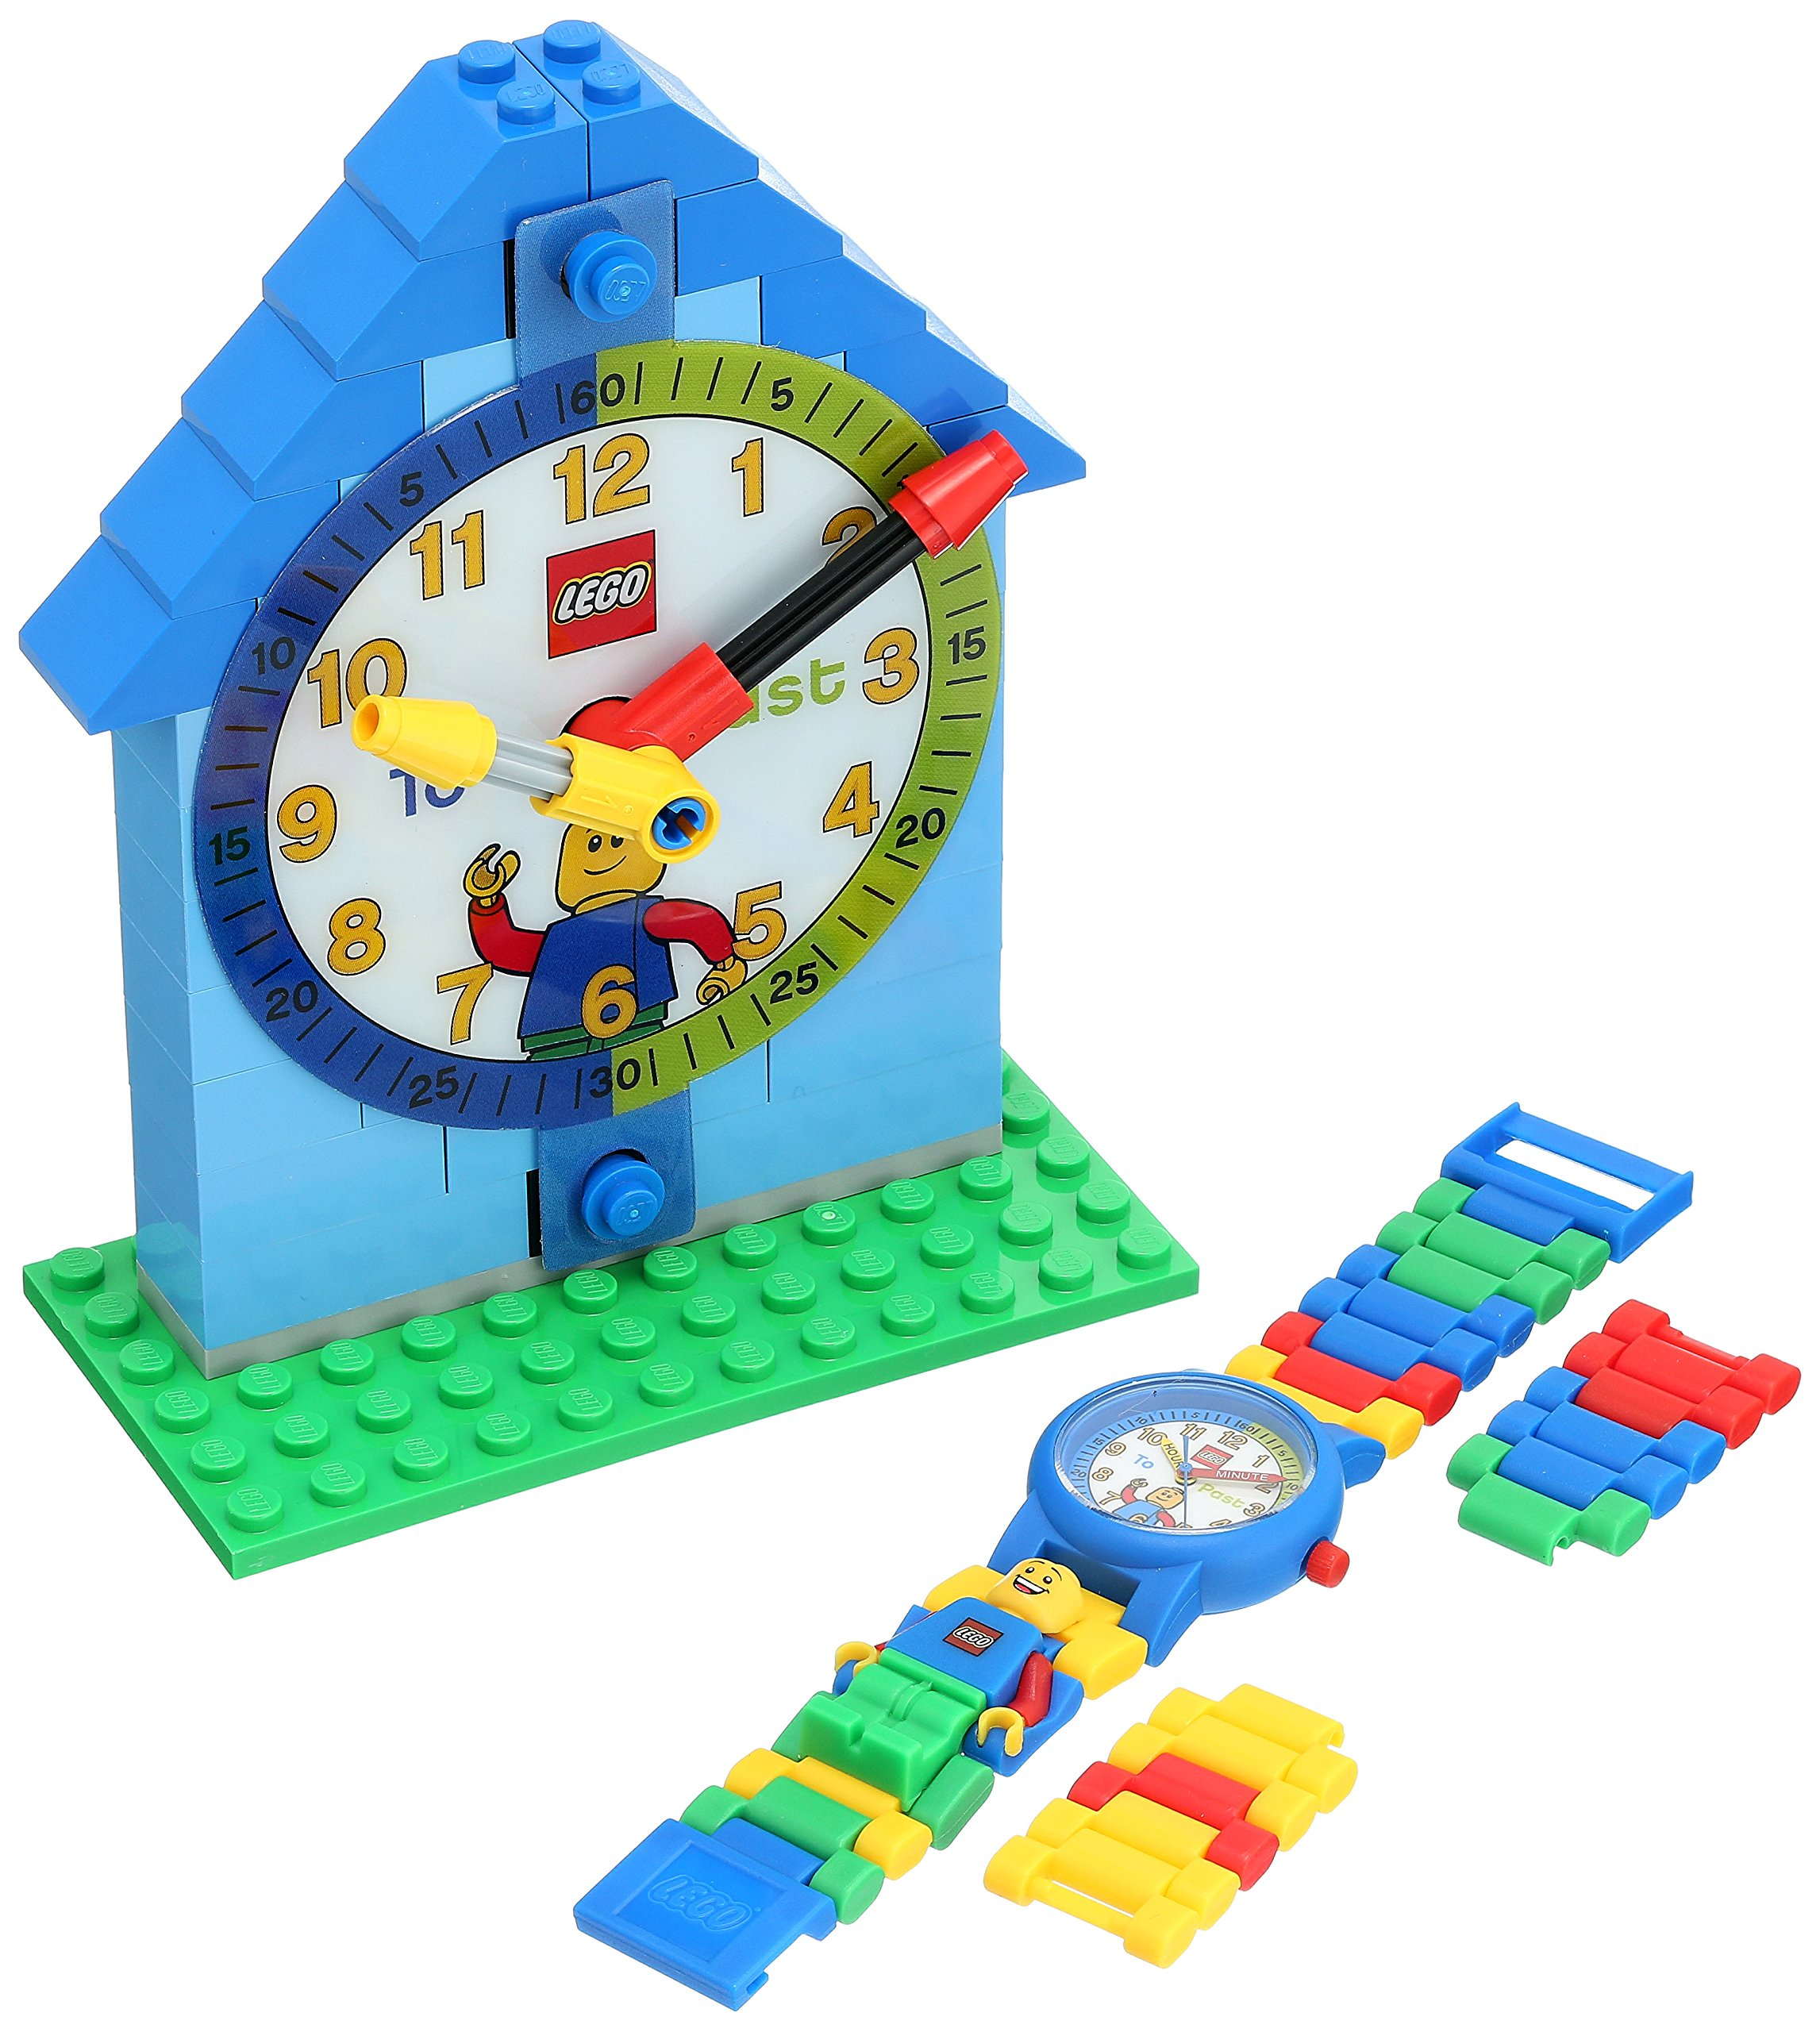 LEGO Time Teacher 9005008 Blue Kids Minifigure Link Buildable Watch, Constructible Clock and Activity Cards   Blue/Green   Plastic   25mm case Diameter  Analog Quartz   boy Girl   Official by LEGO